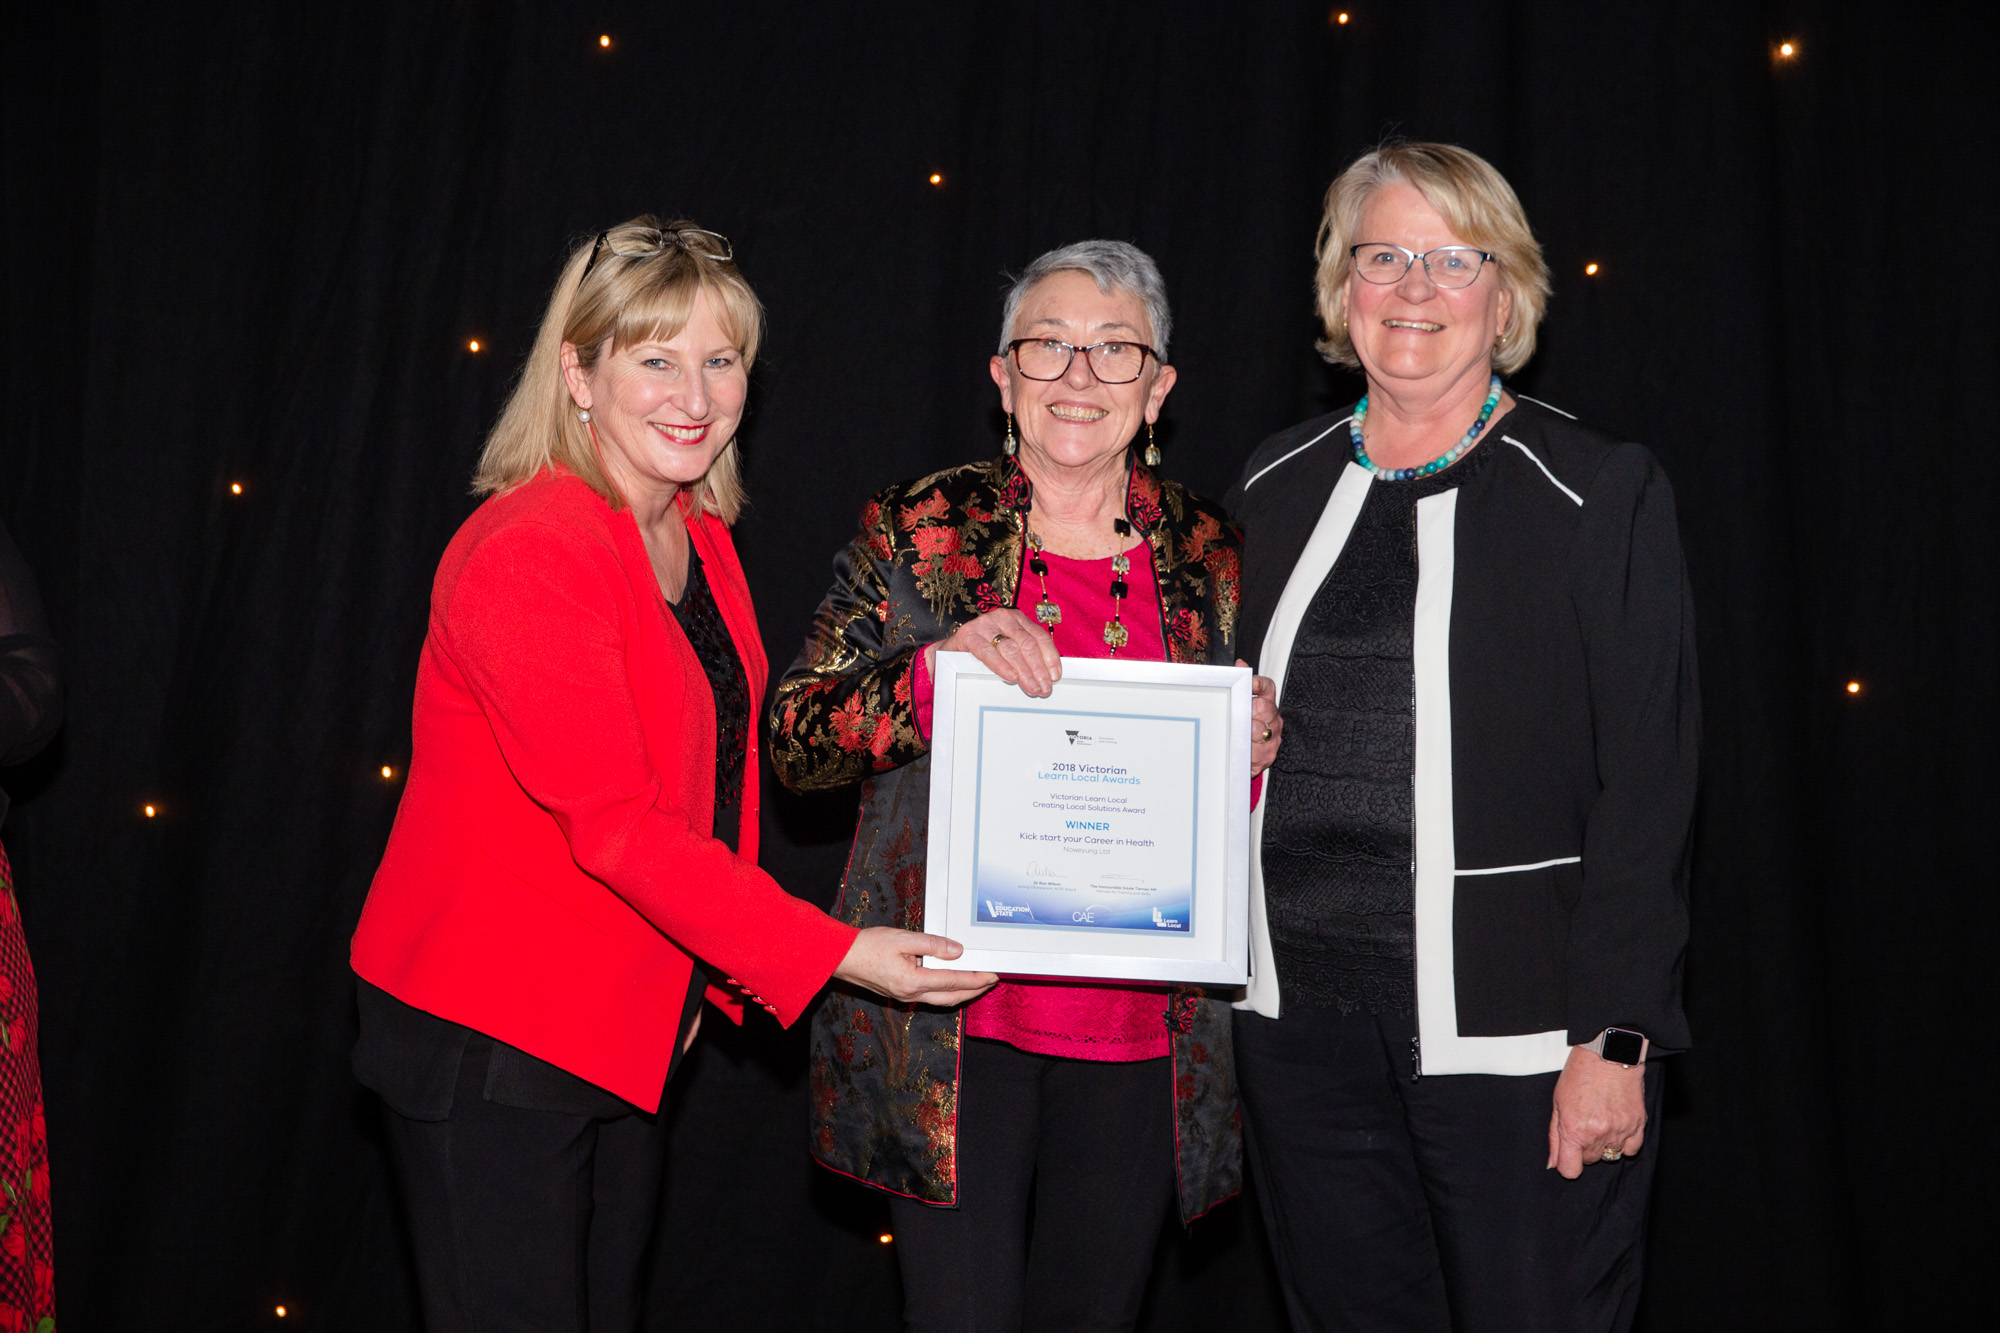 Winners at Victorian Learn Local Awards, Minister Gayle Tierney MP with Glenda McPhee and Josie Rose from Noweyung Learn Local